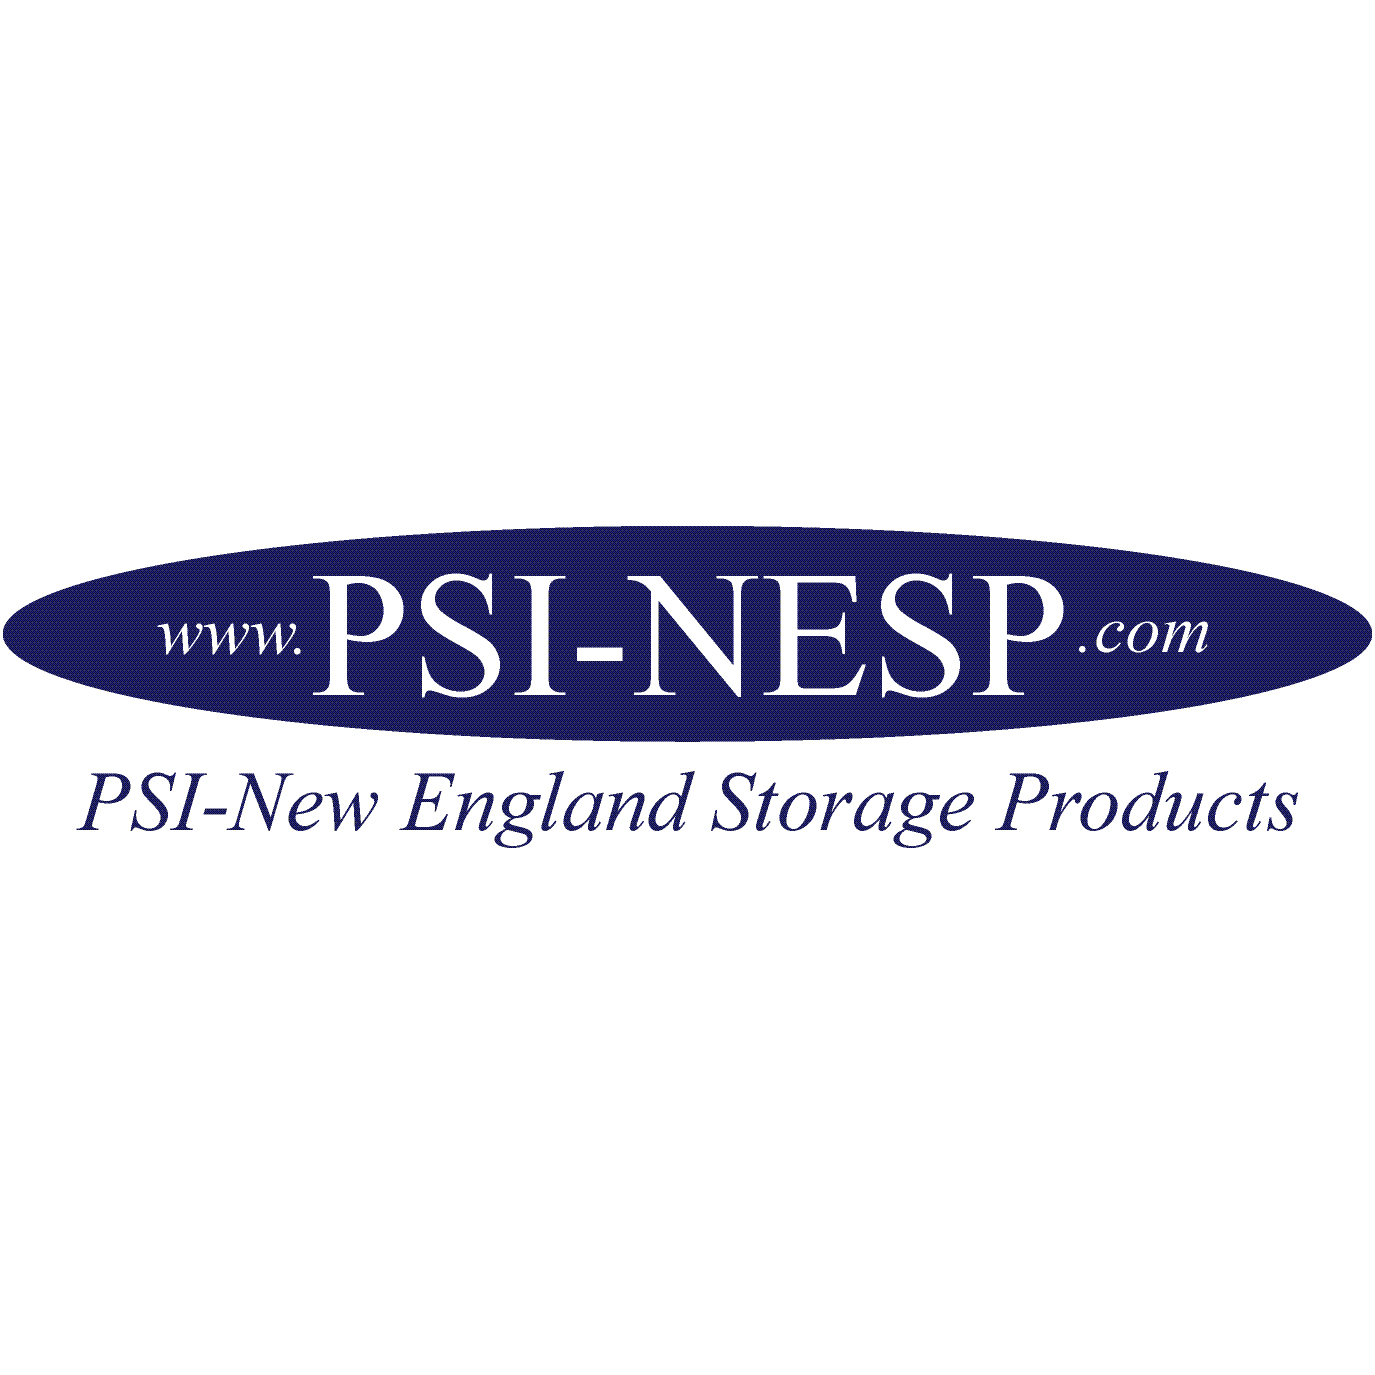 PSI-New England Storage Products